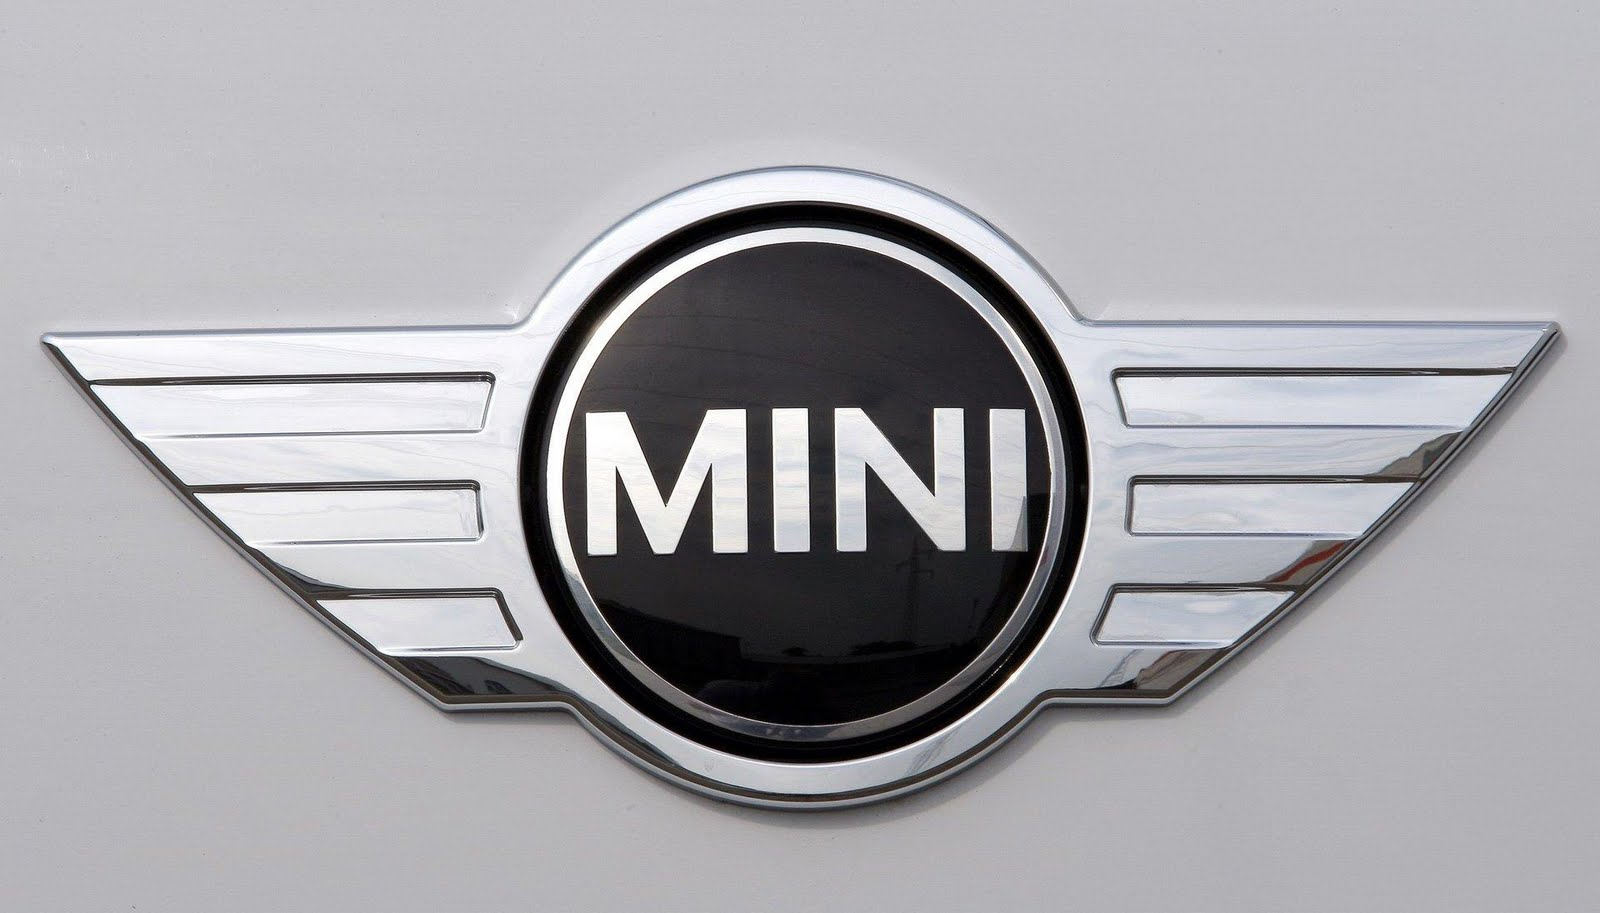 mini cooper logo, mini car symbol meaning and history | car brand